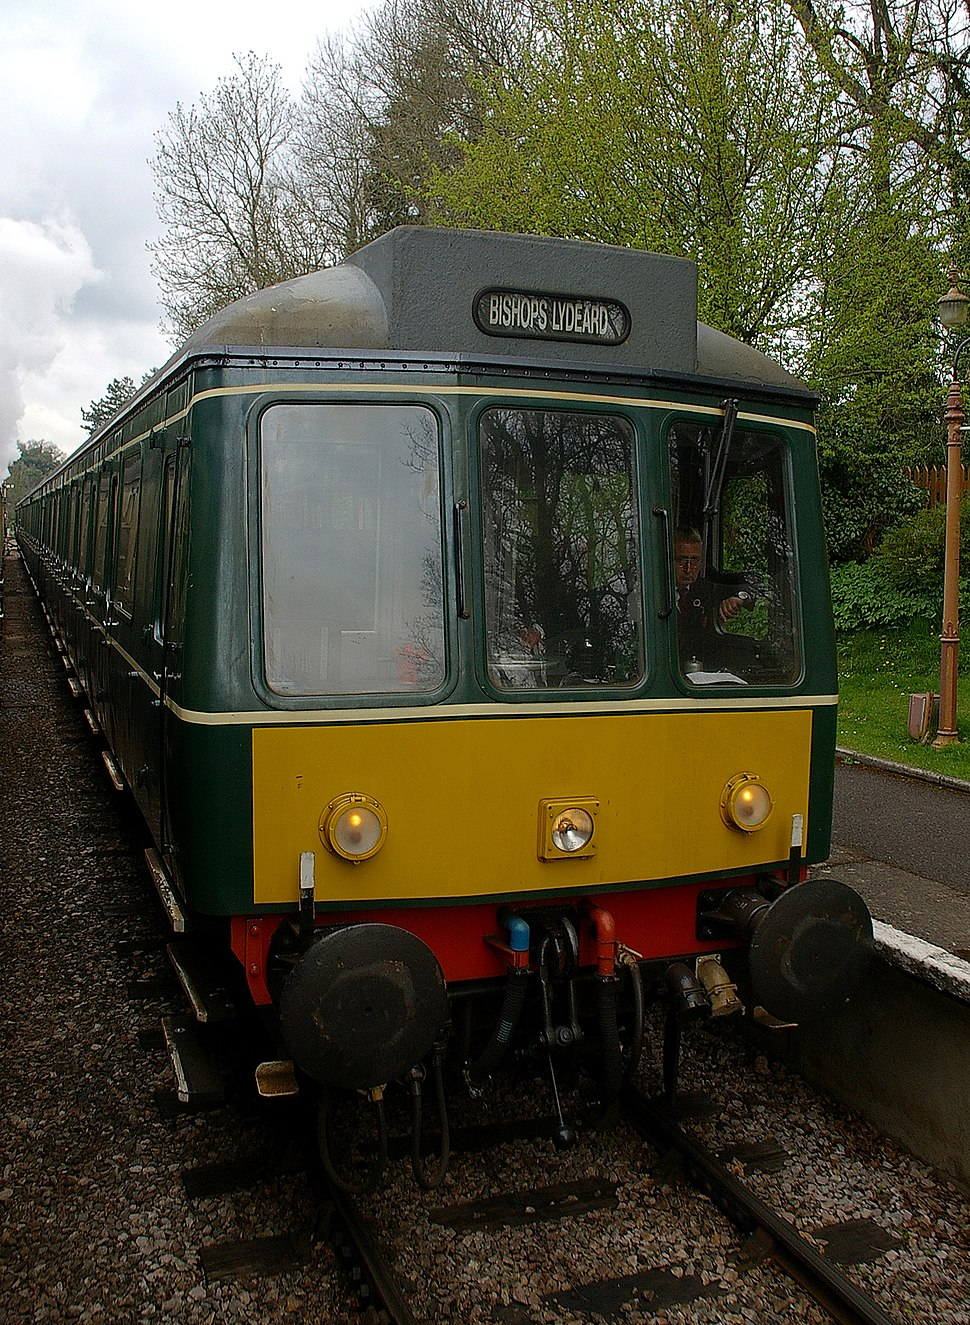 Crowcombe Heathfield railway station MMB 02